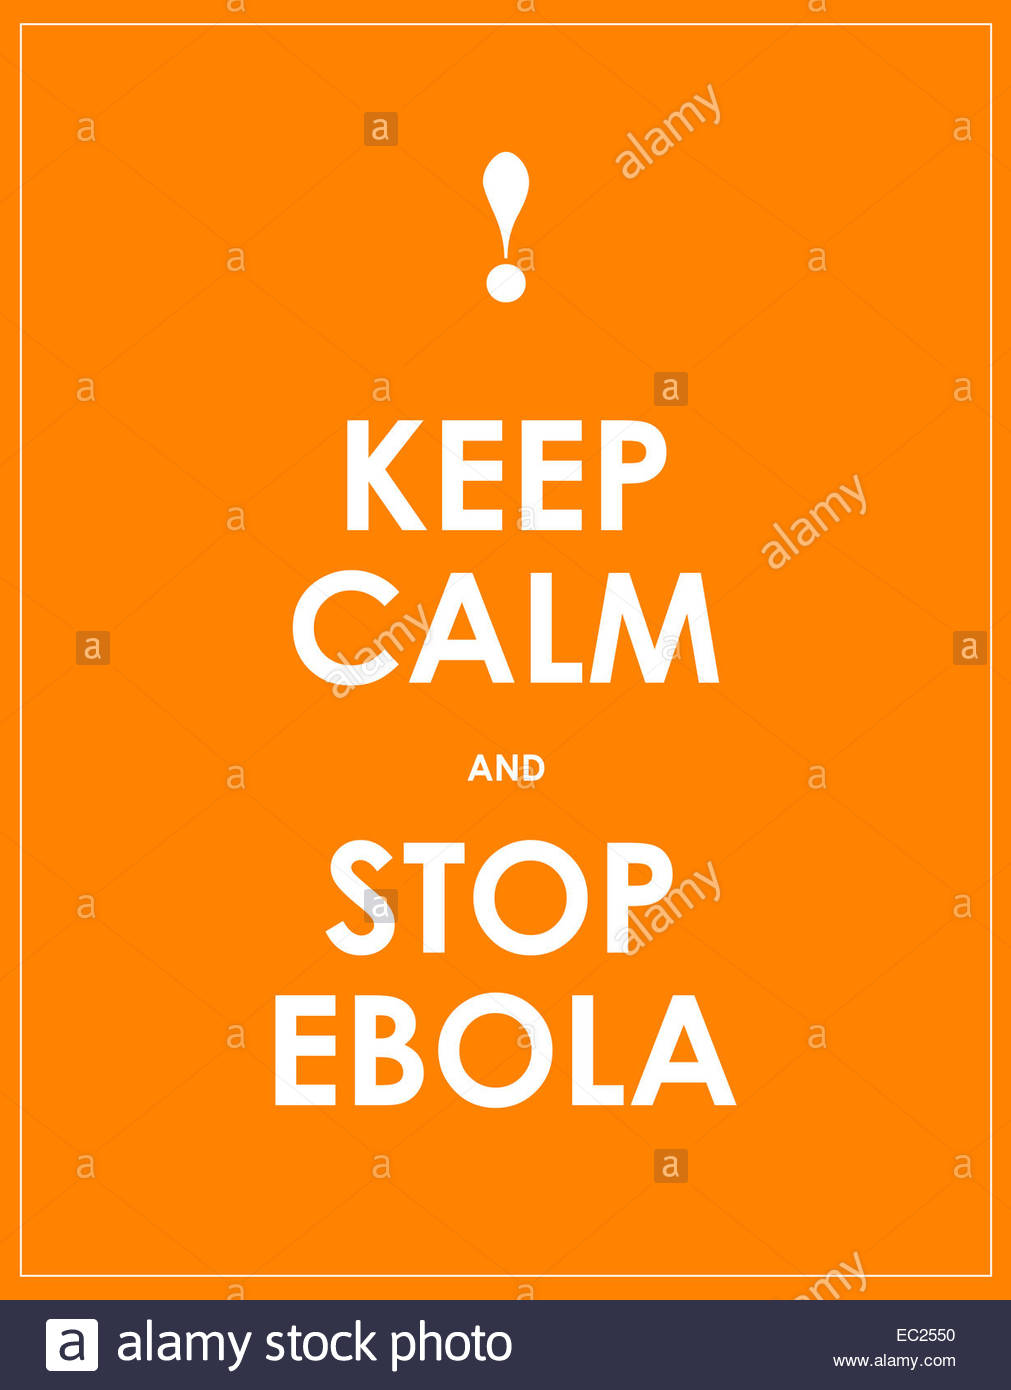 keep calm and stop ebola background Stock Photo 76265308   Alamy 1011x1390